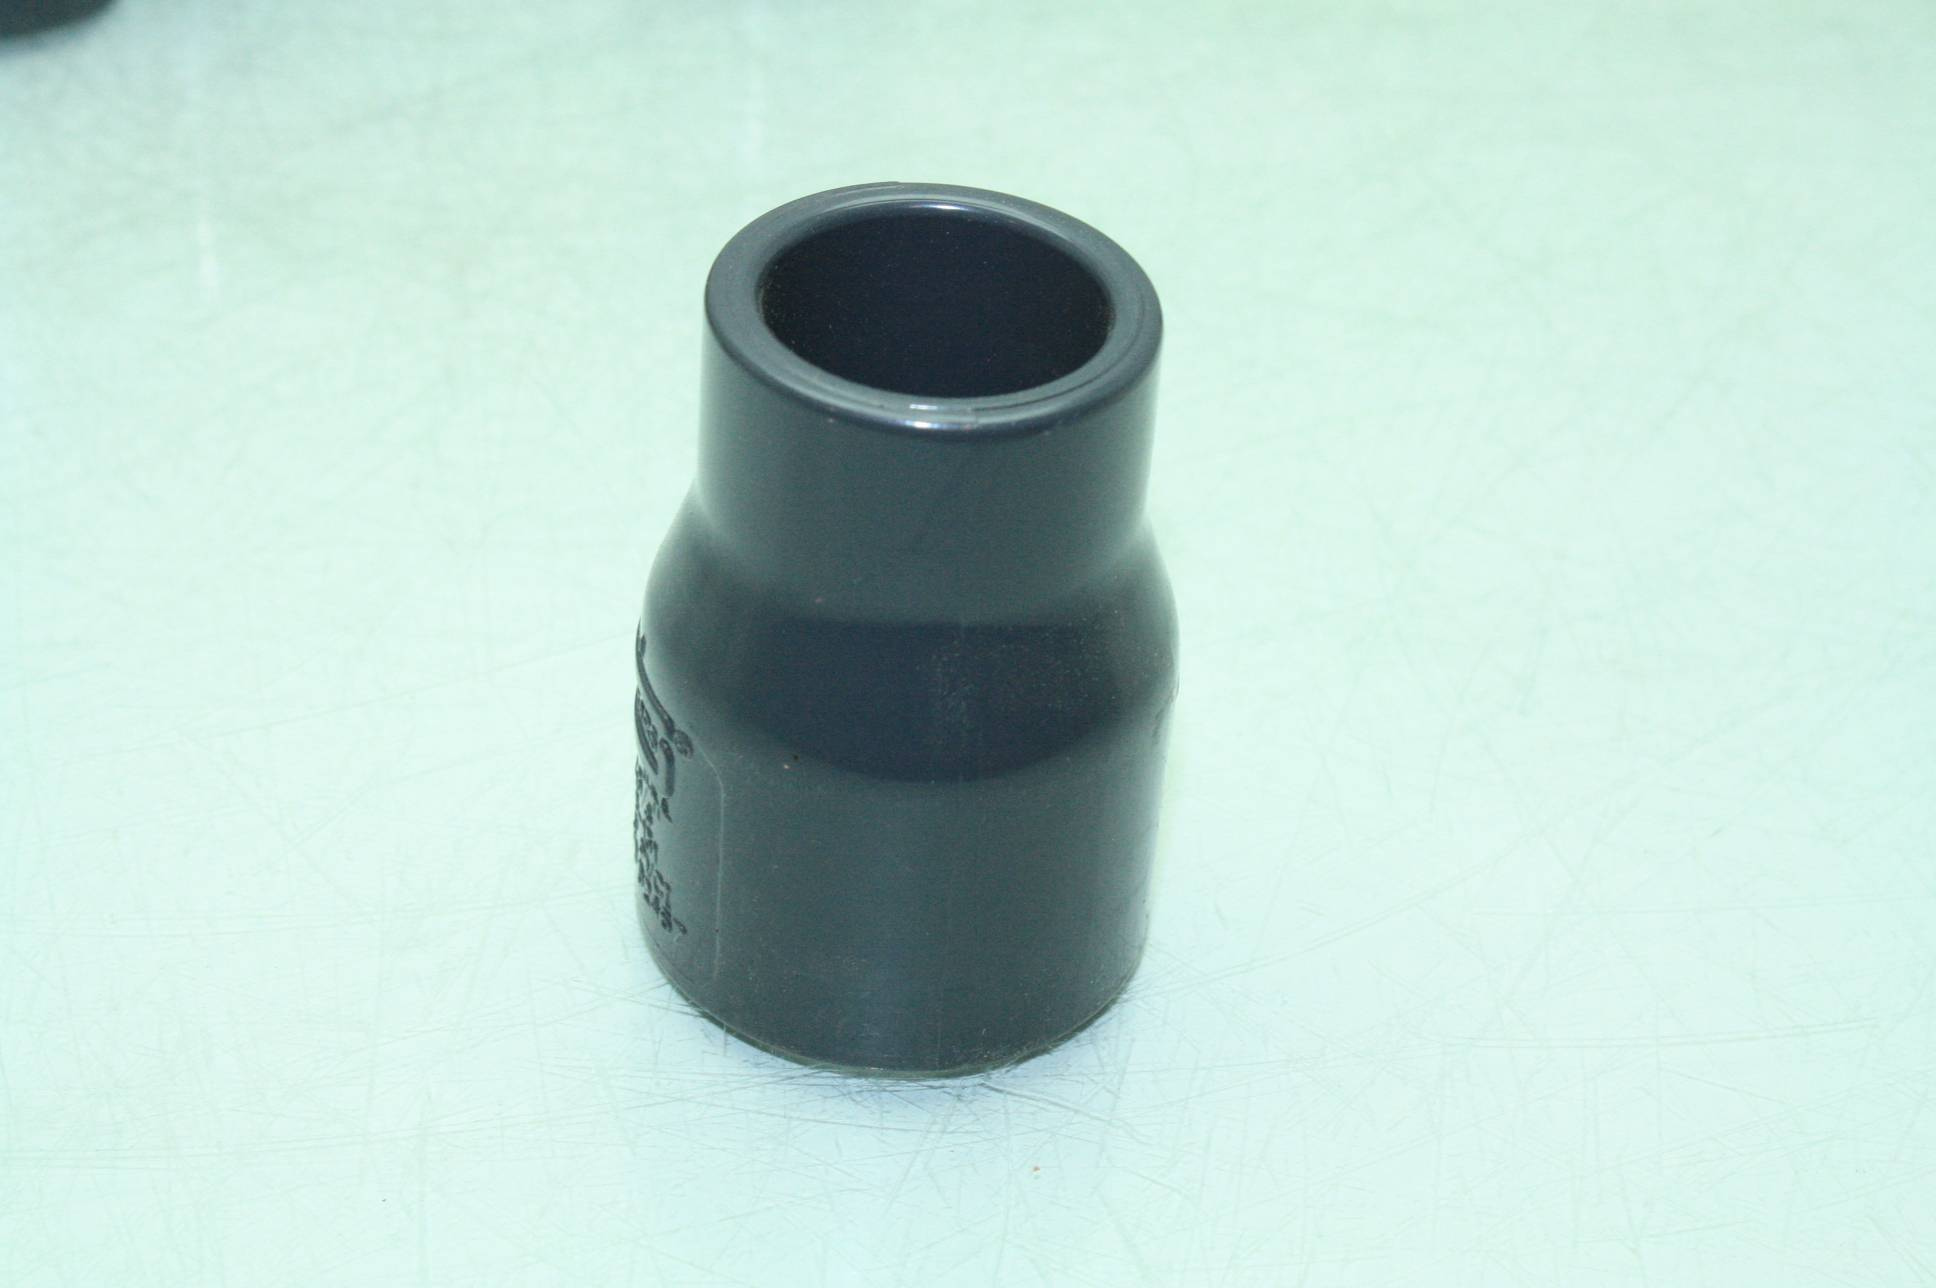 Nibco spears cpvc pipe coupling  size